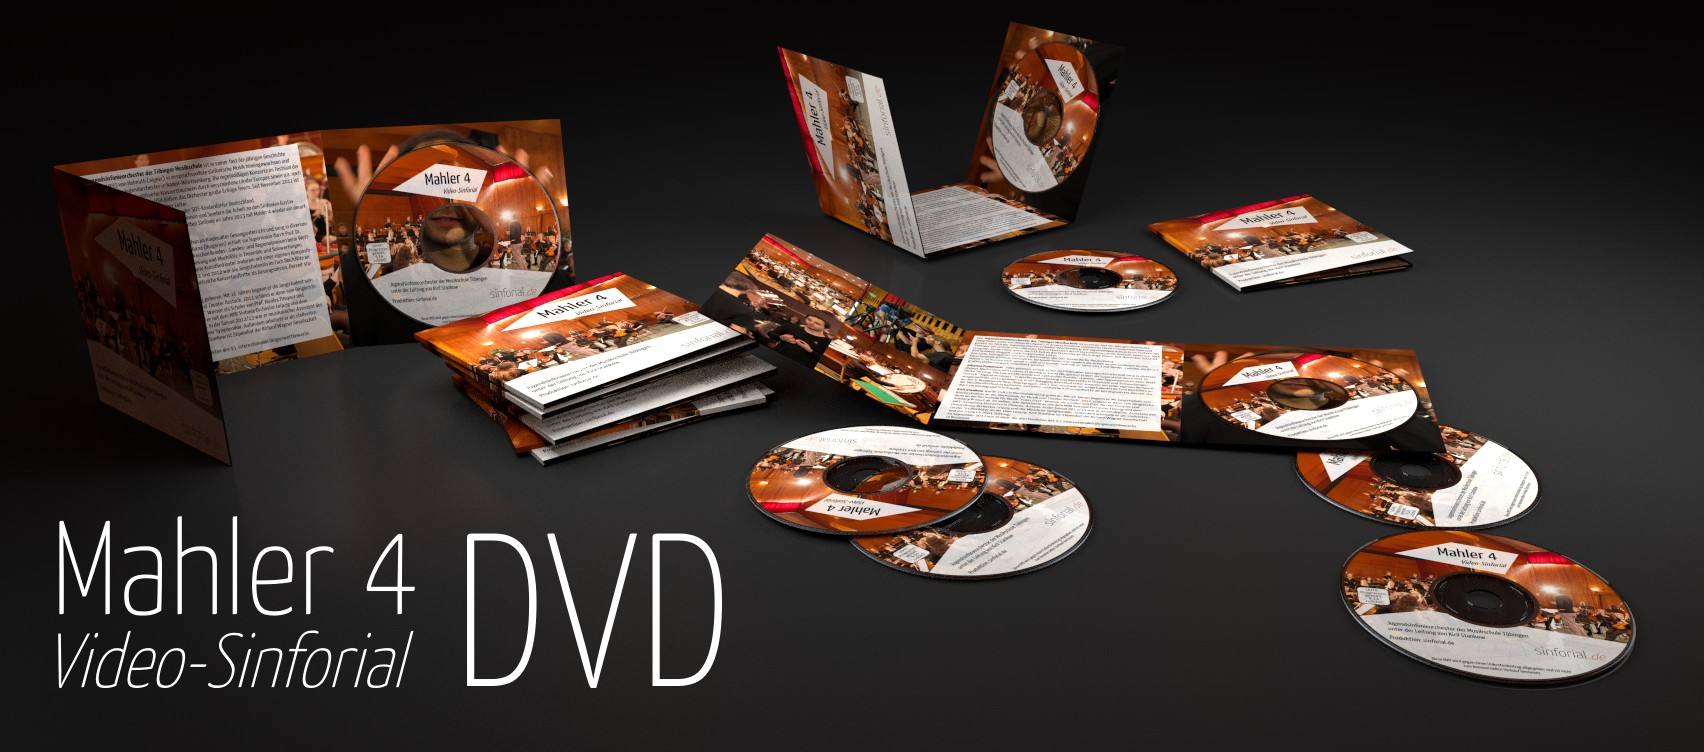 Sinforial DVD Mahler 4 Preview